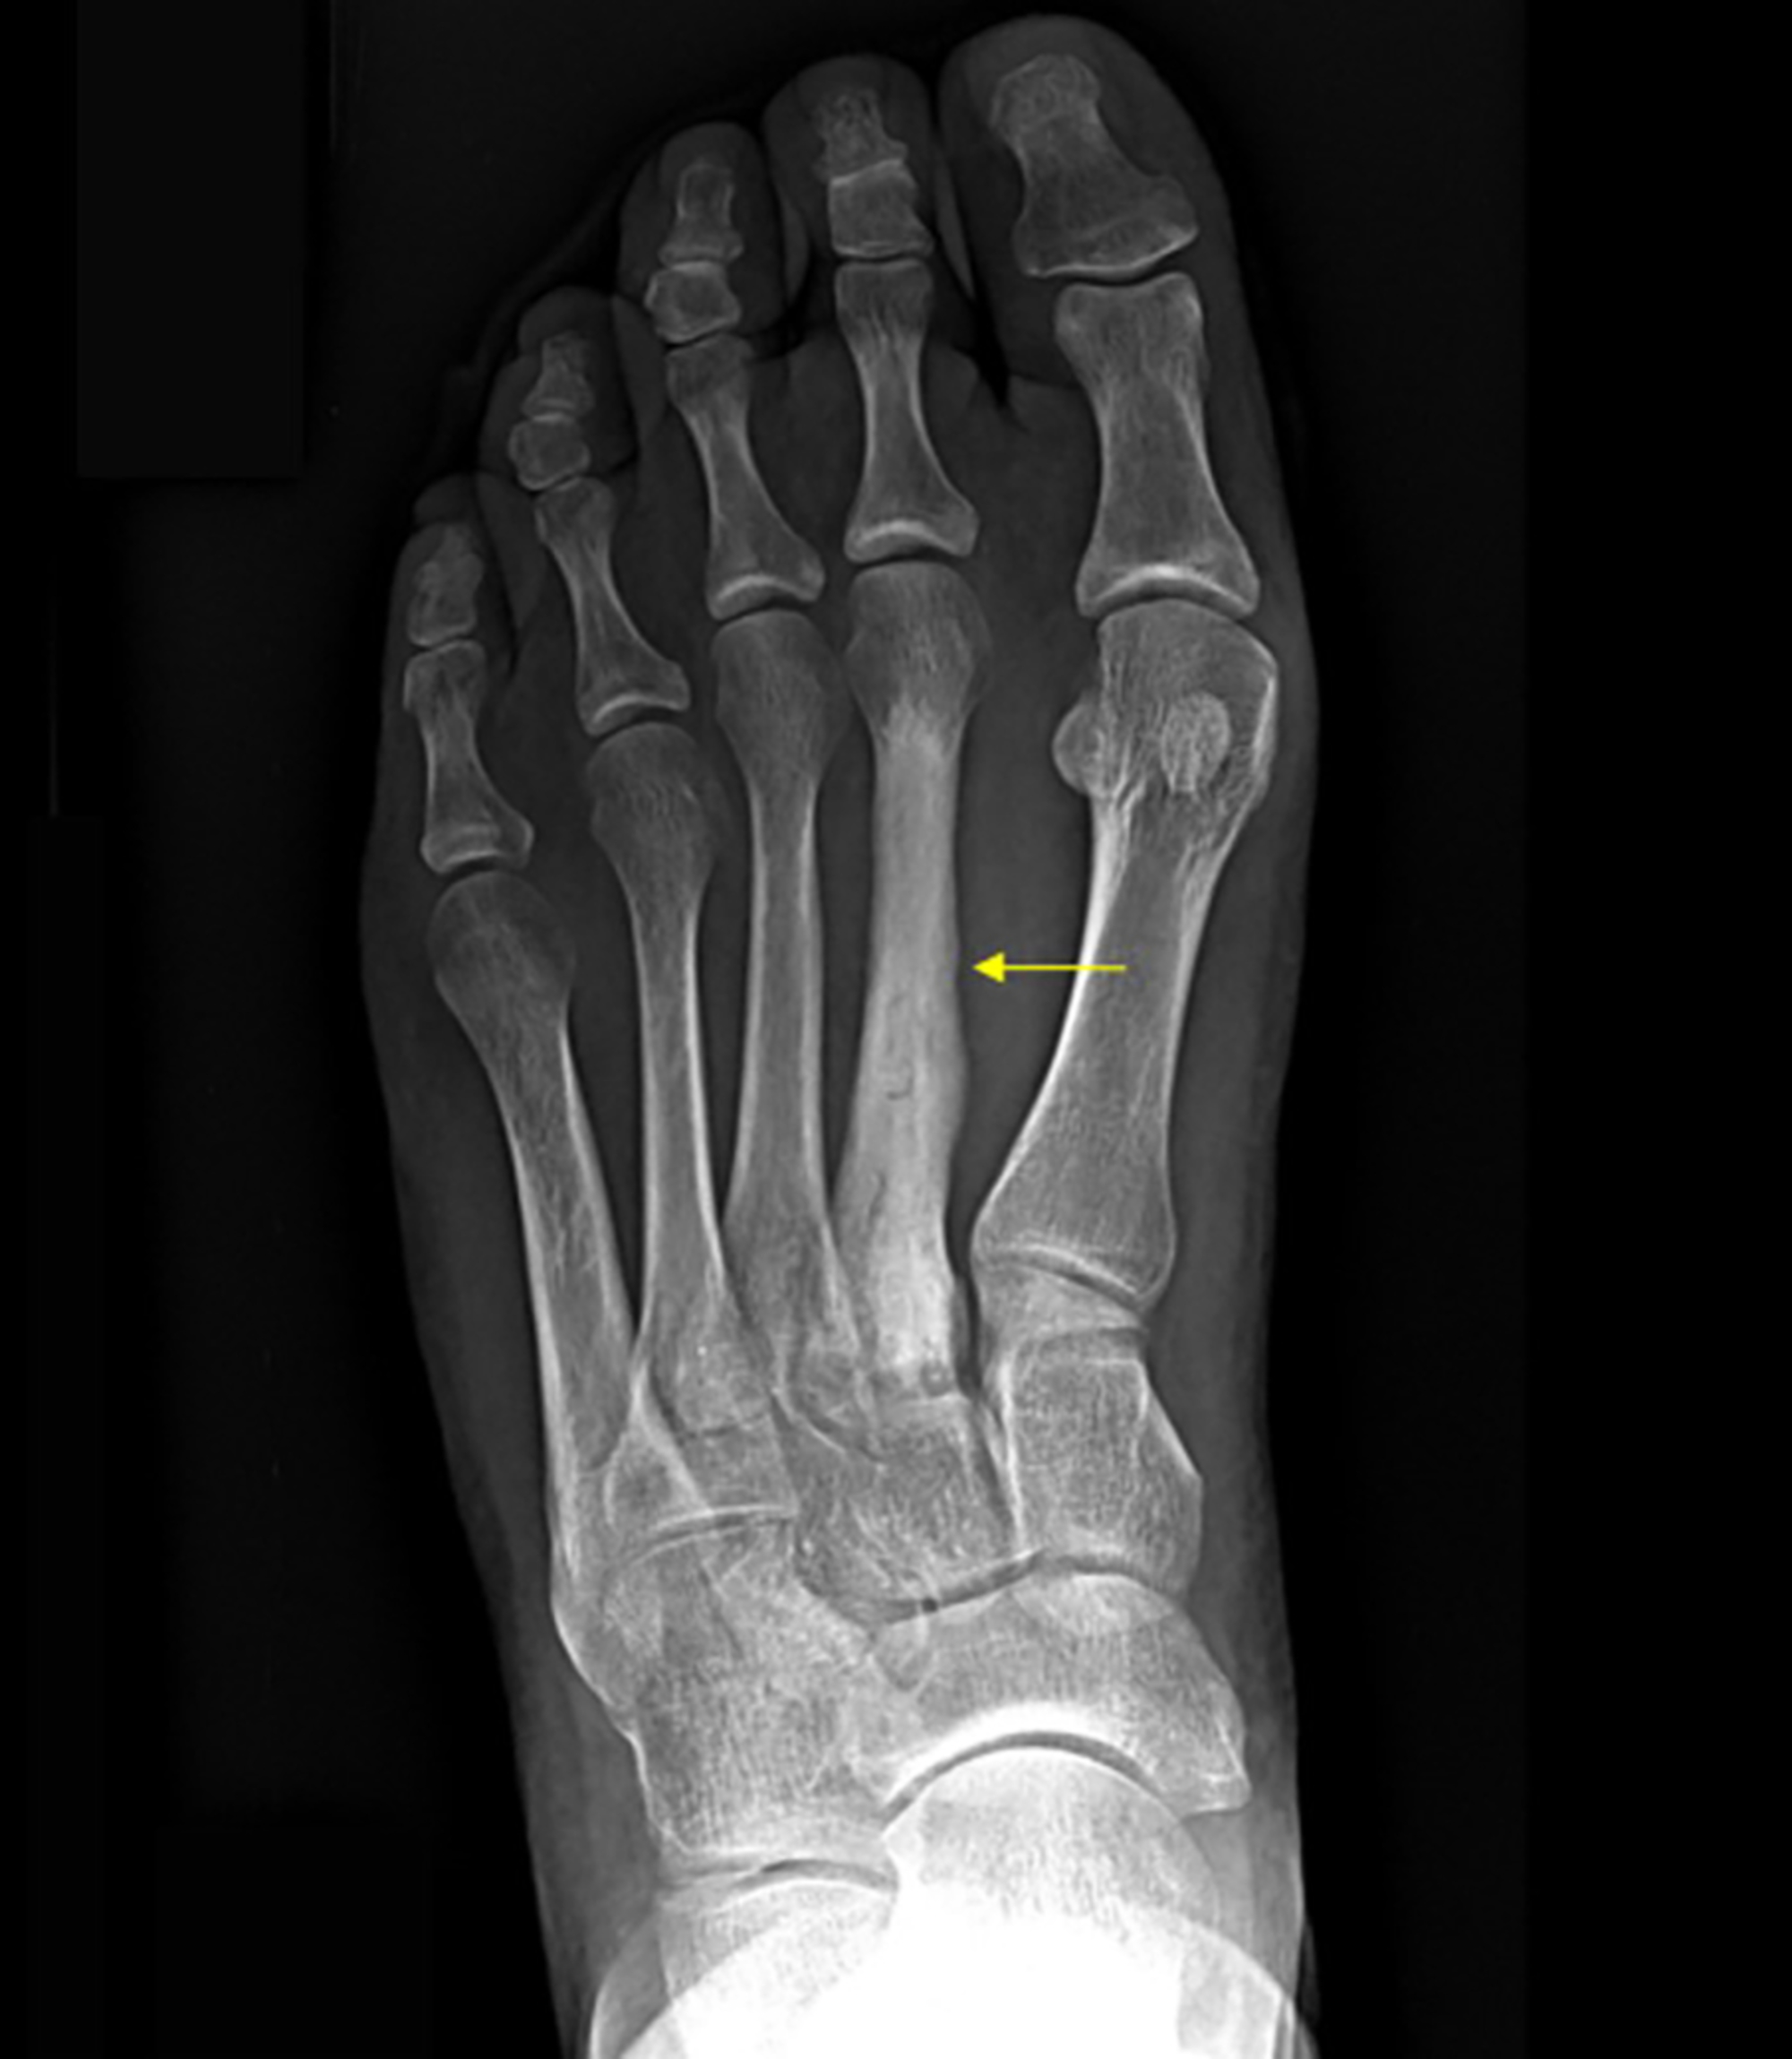 Cureus Is Use Of Bone Cement For Treatment Of Second Metatarsal Stress Fractures Safe A Case Report